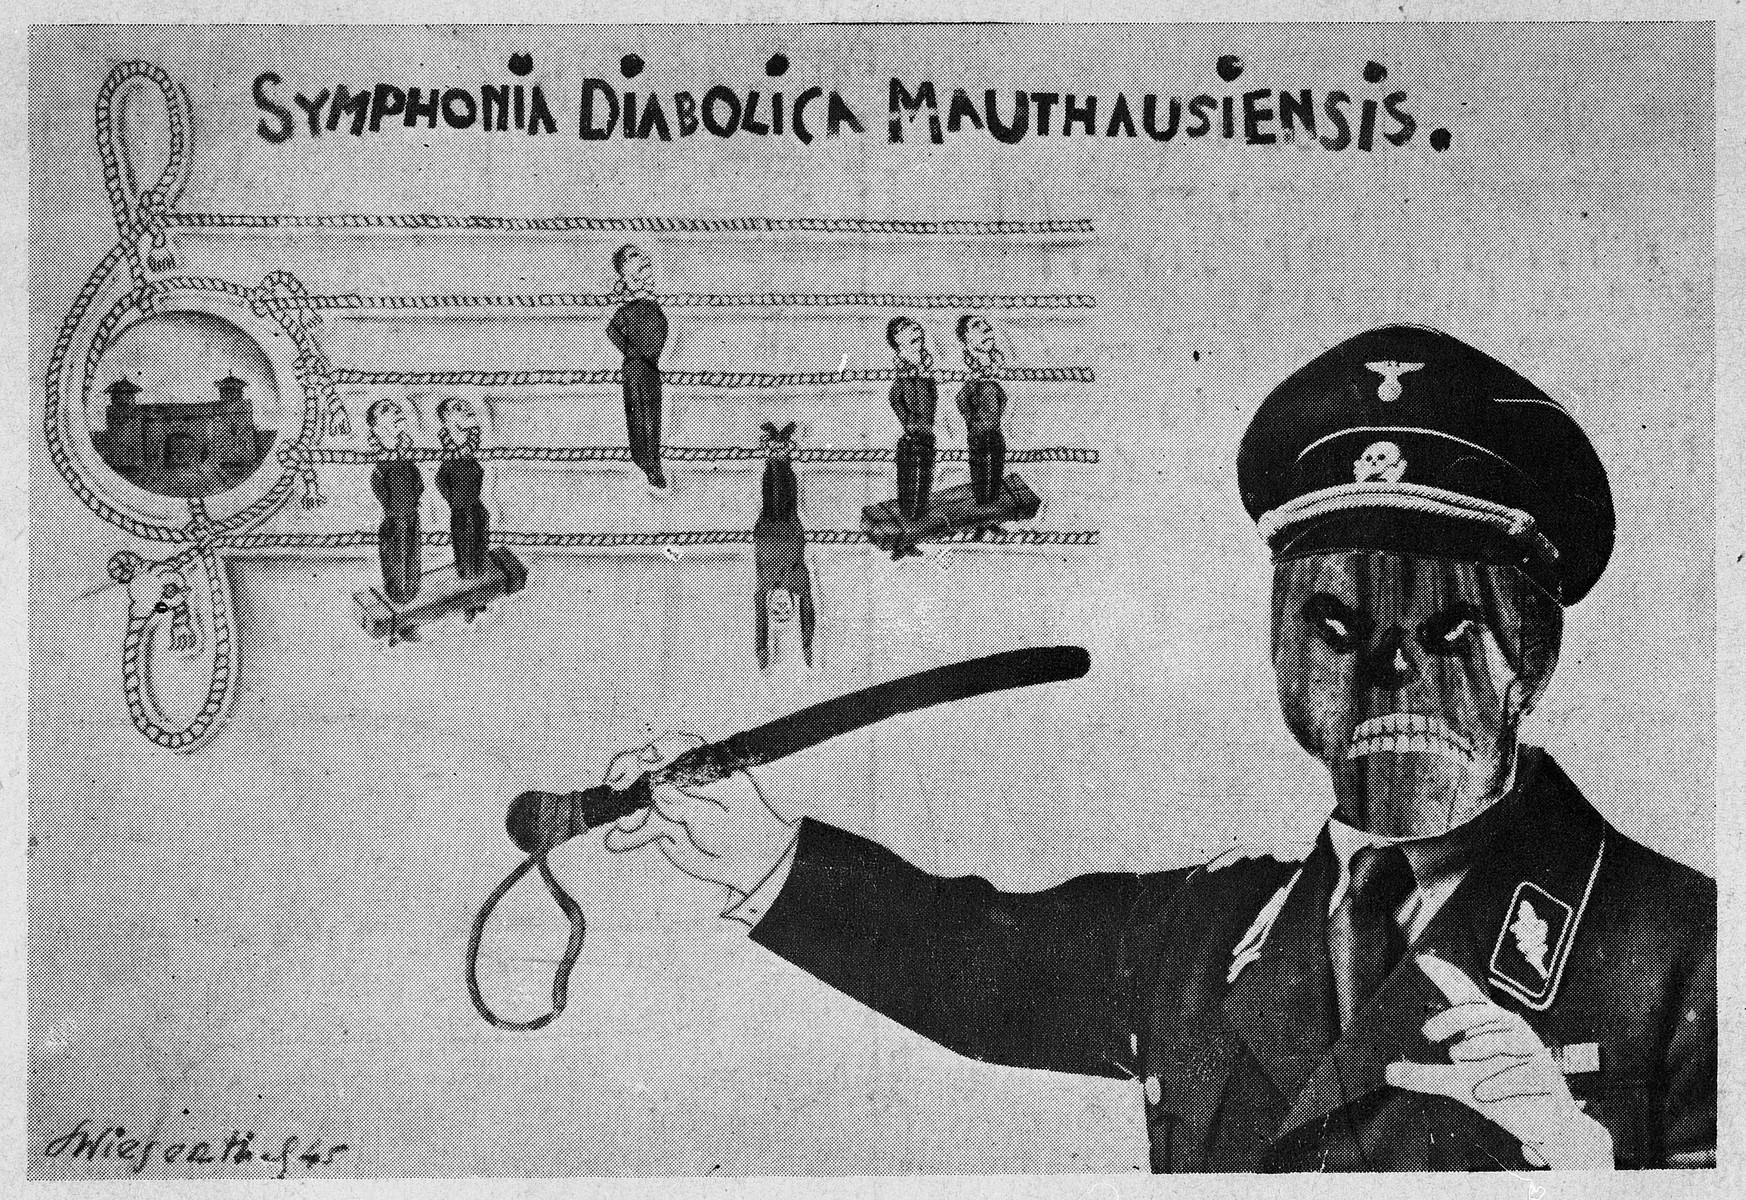 """Postcard showing a cartoon drawing entitled """"Symphonia Diabolica Mauthausiensis"""" issued on the first anniversary of the liberation of Mauthausen and [possibly drawn by Simon Wiesenthal]."""